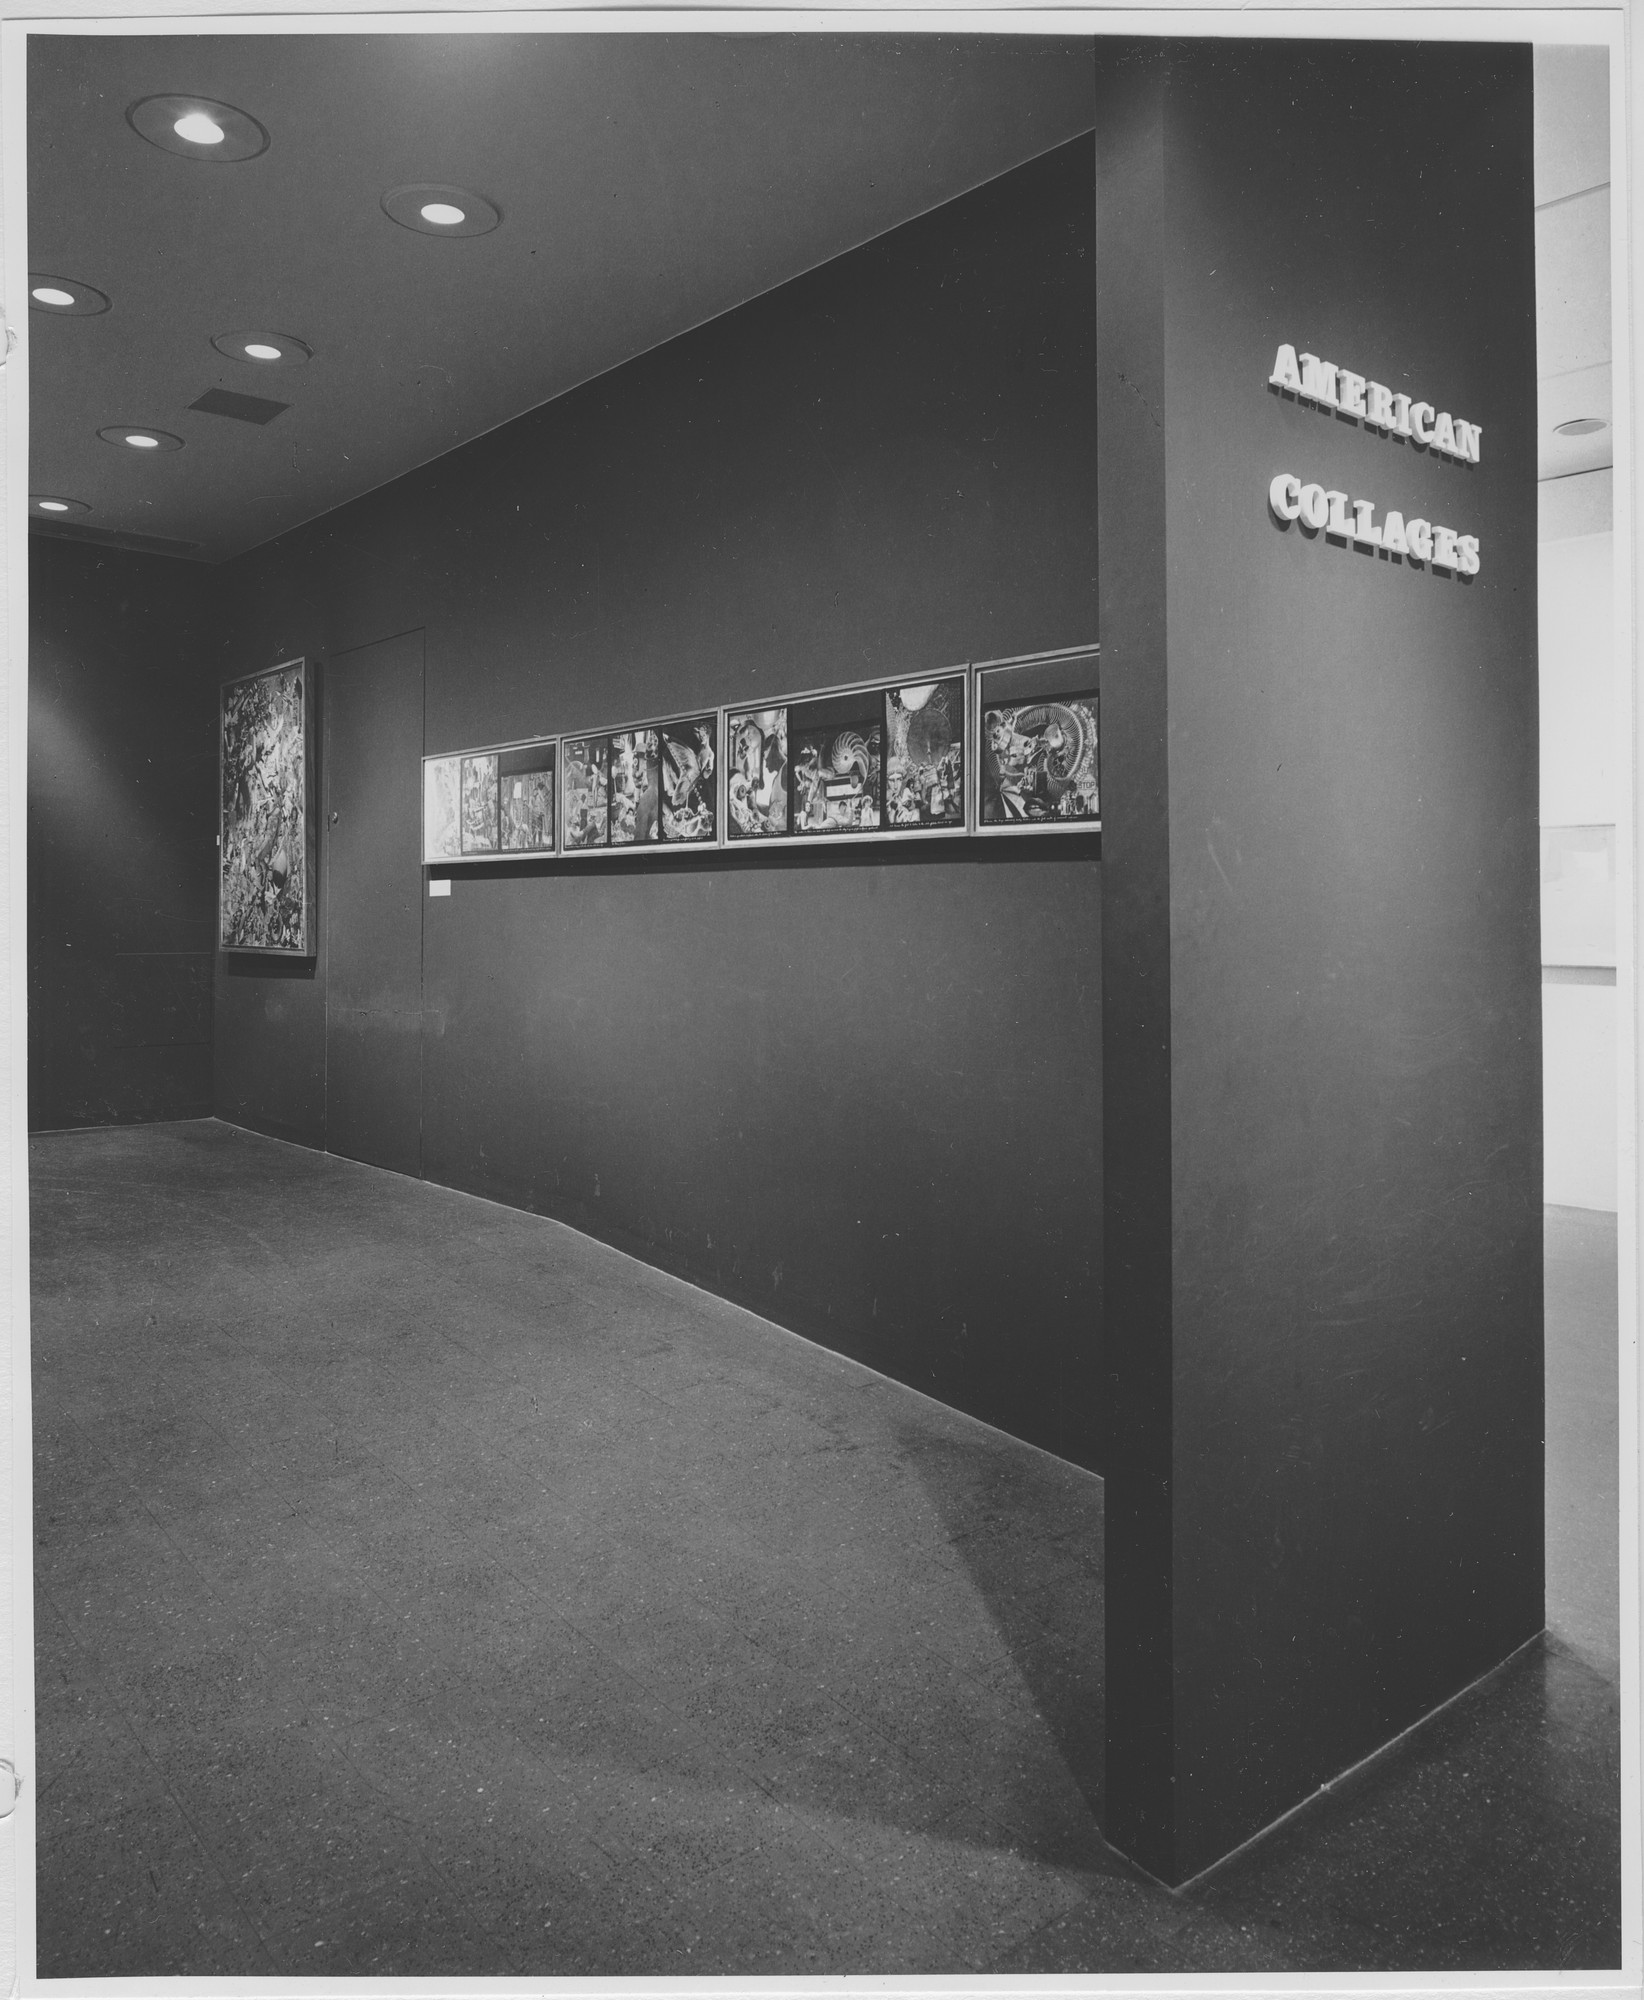 "Installation view of the exhibition, ""American Collages."" May 11, 1965–July 25, 1965. Photographic Archive. The Museum of Modern Art Archives, New York. IN766.1. Photograph by Rolf Petersen."